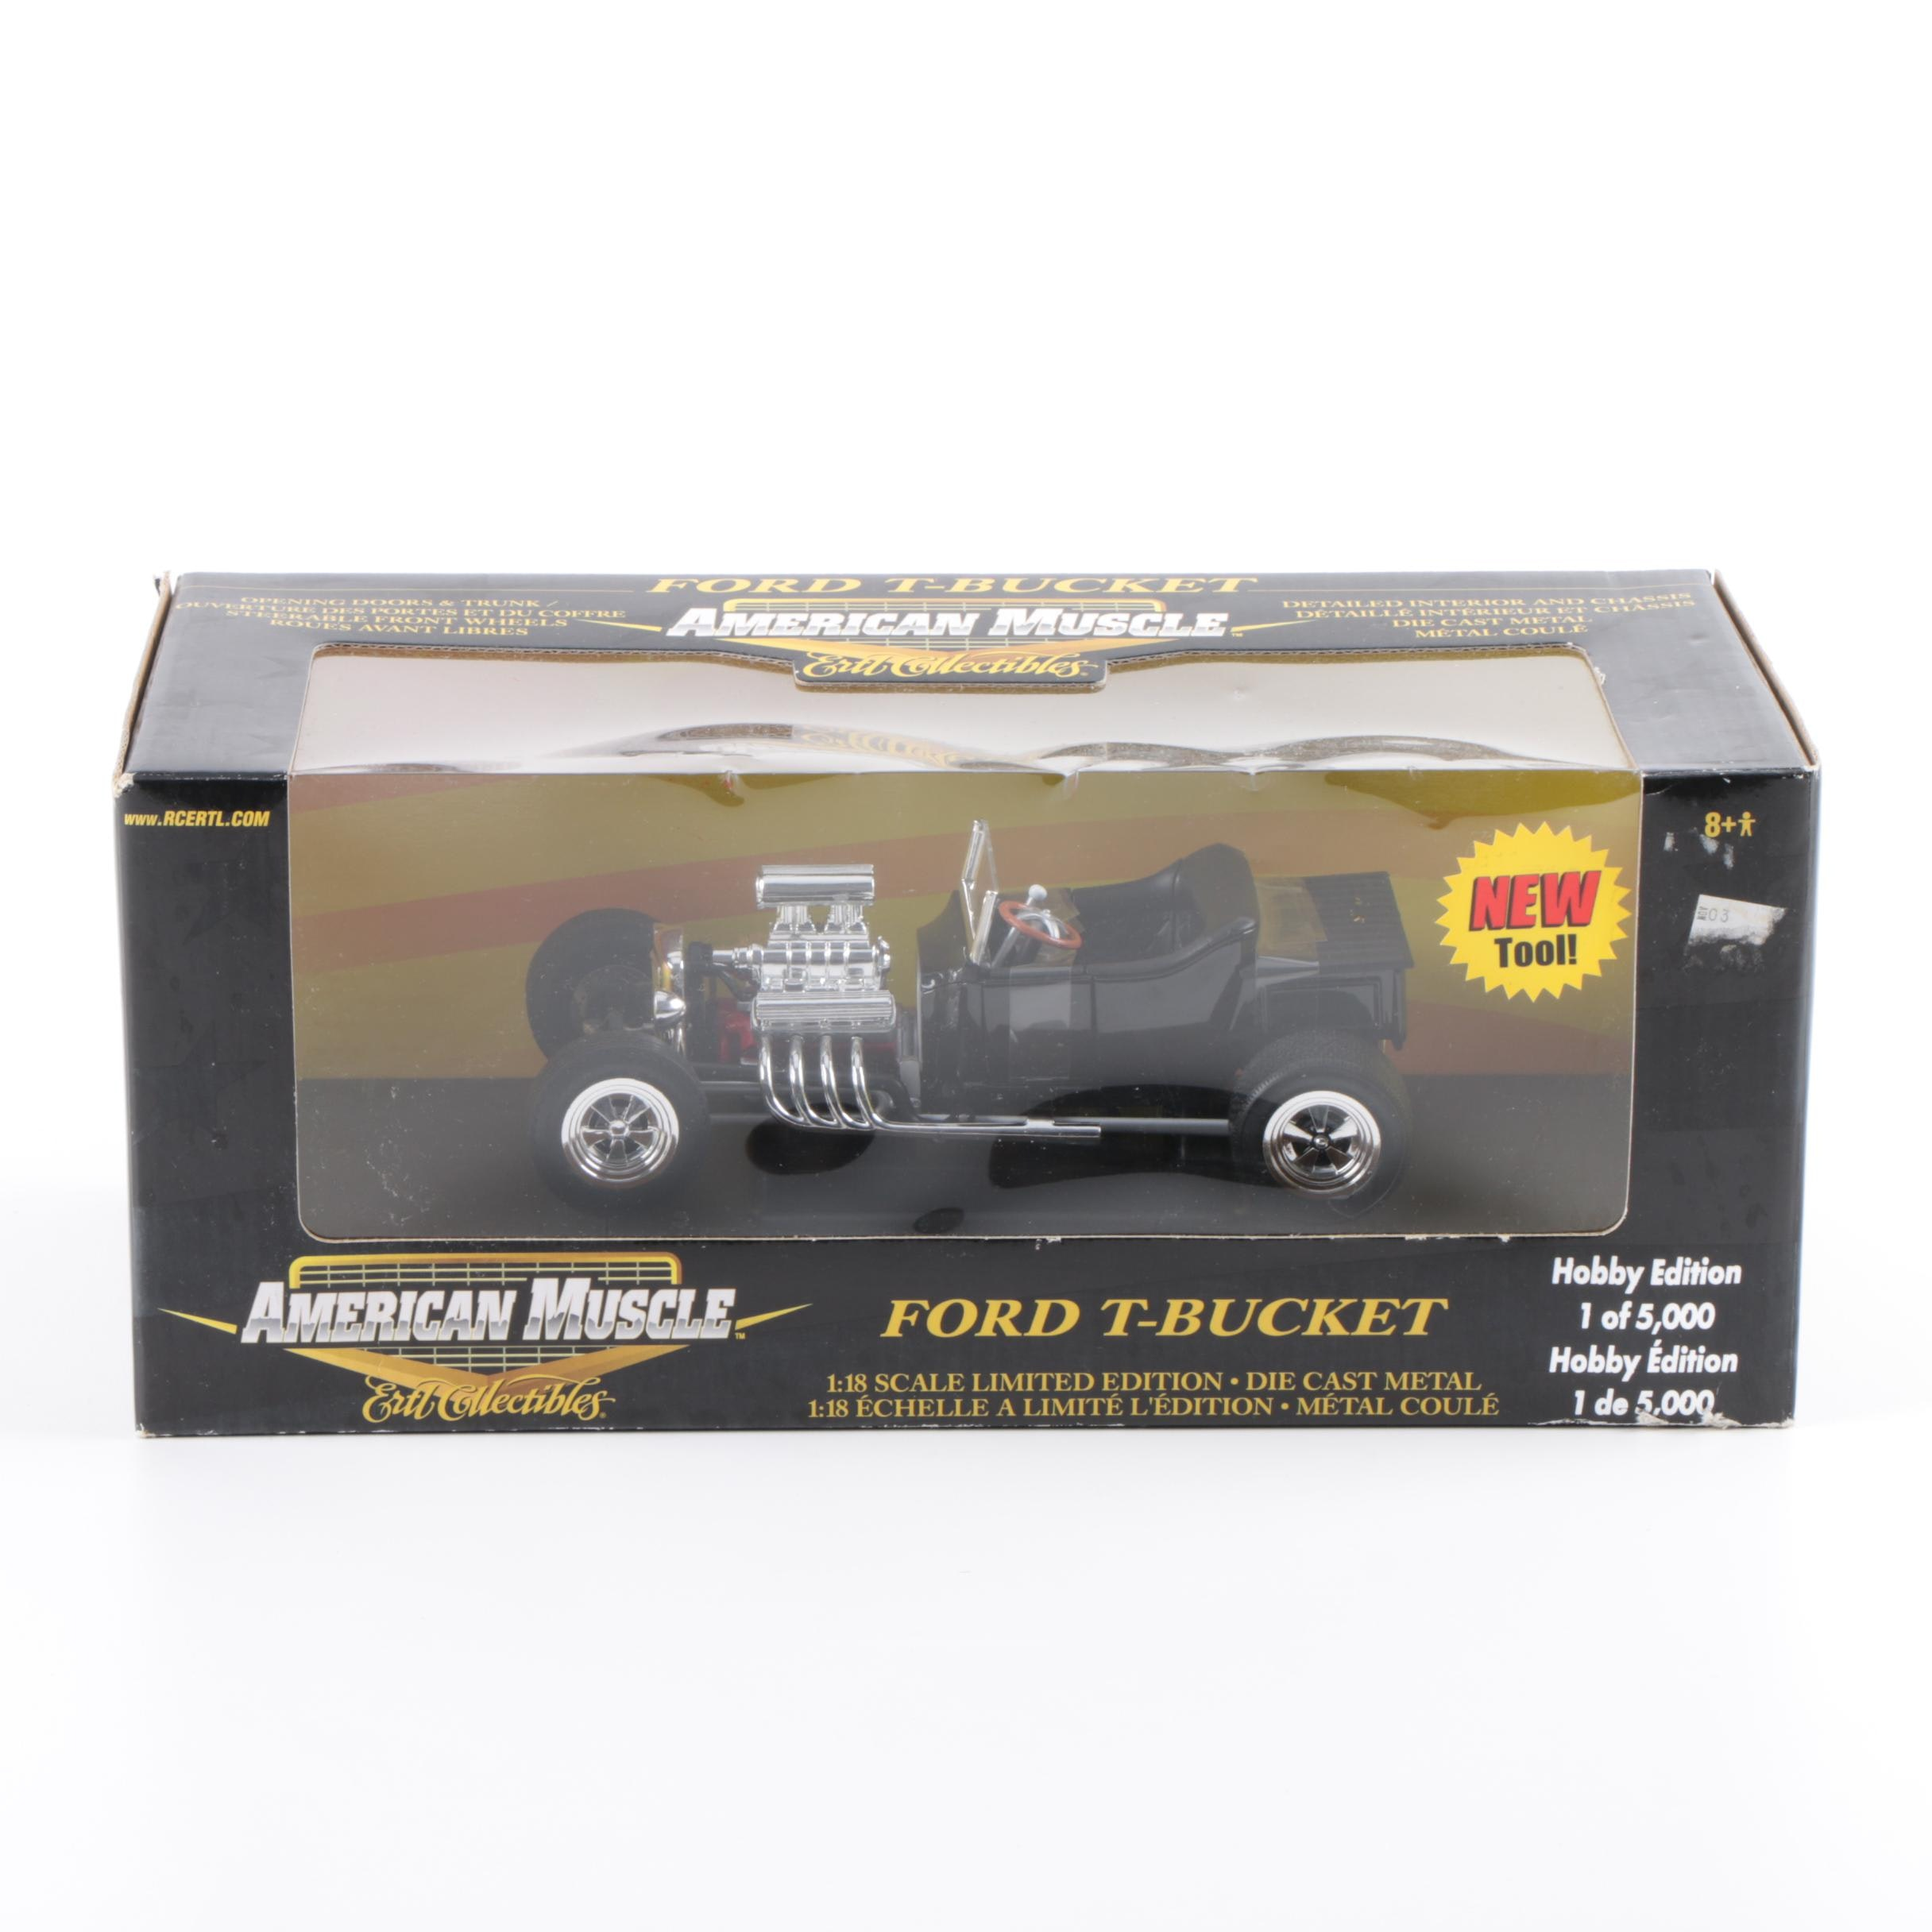 Ertl Collectibles American Muscle Ford T-Bucket Die-Cast Car